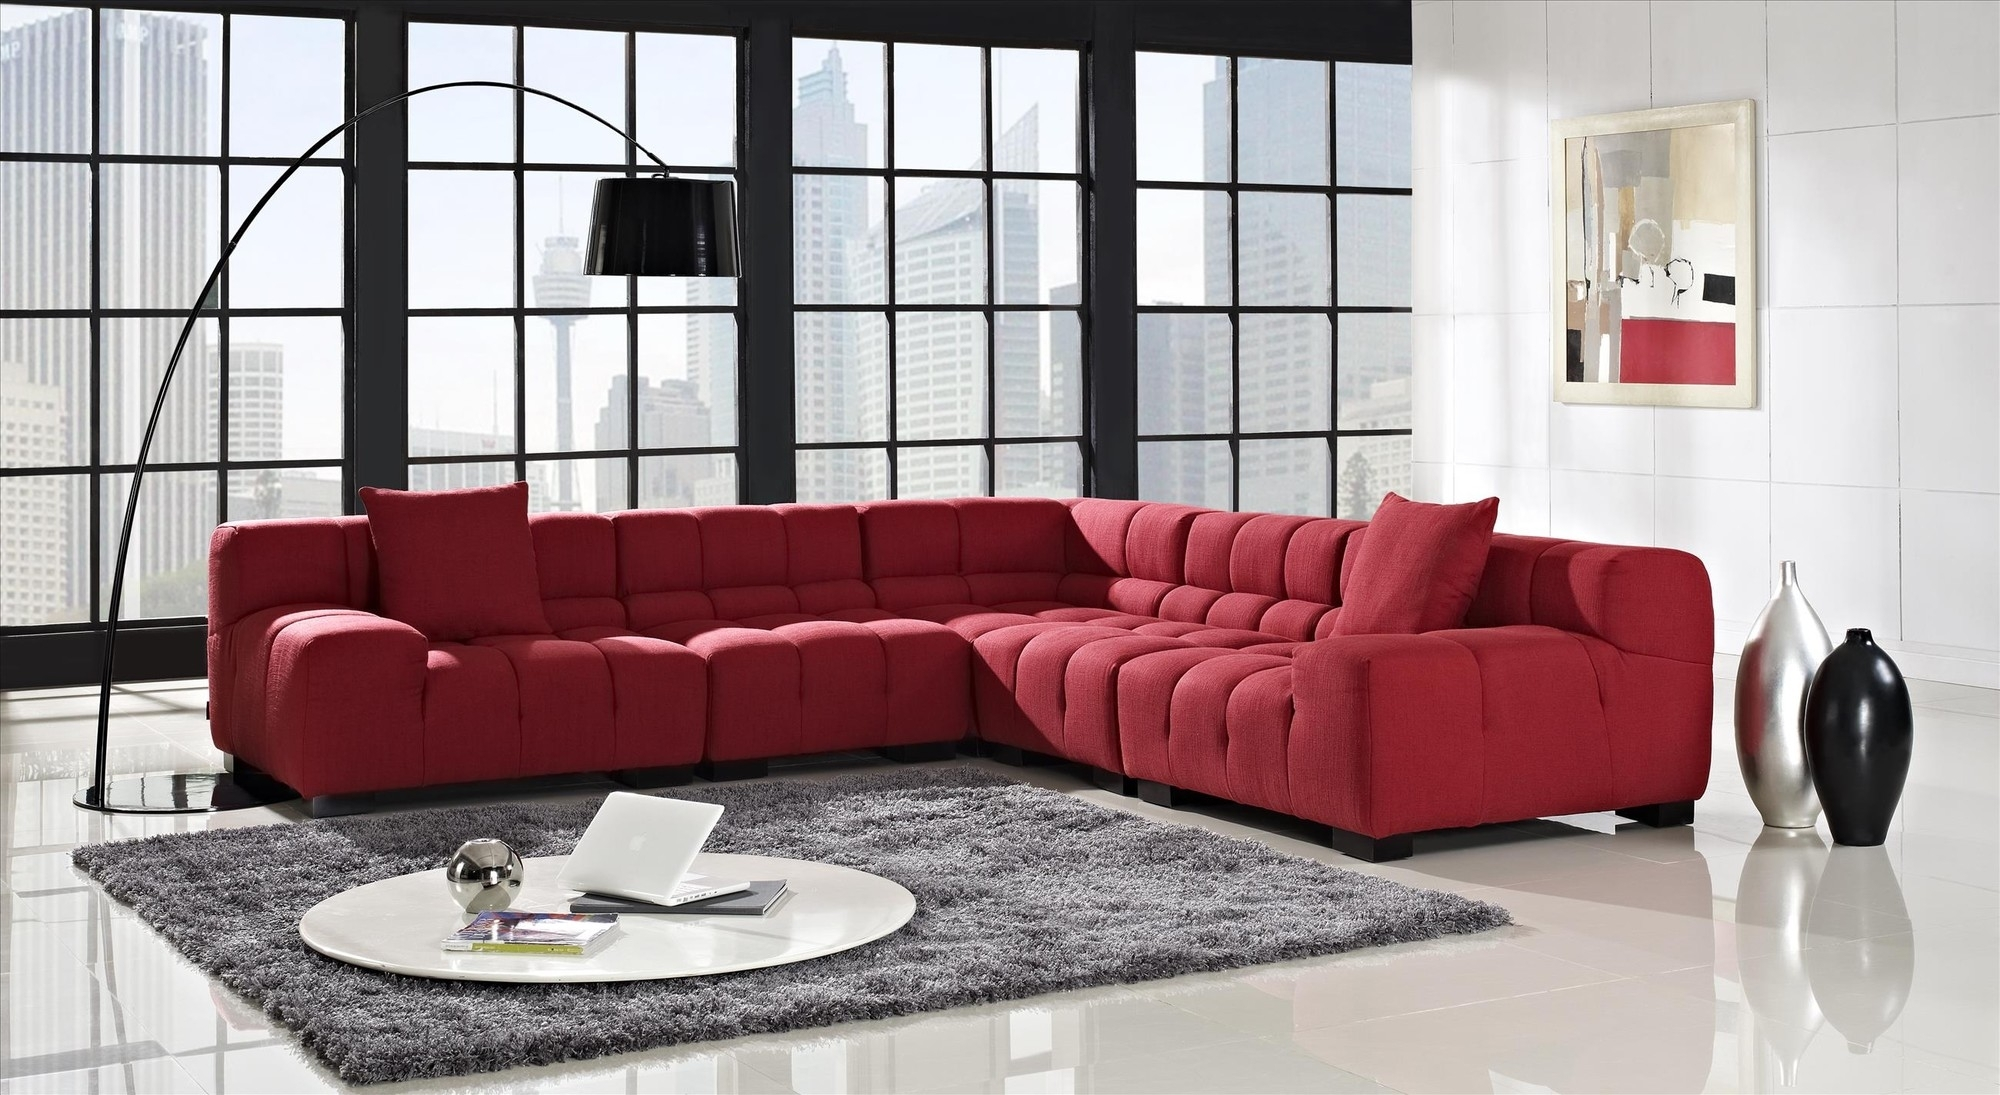 Modular Sectional Sofas Sofa Ashley Furniture Red Leather For Small inside Canada Sectional Sofas For Small Spaces (Image 5 of 10)